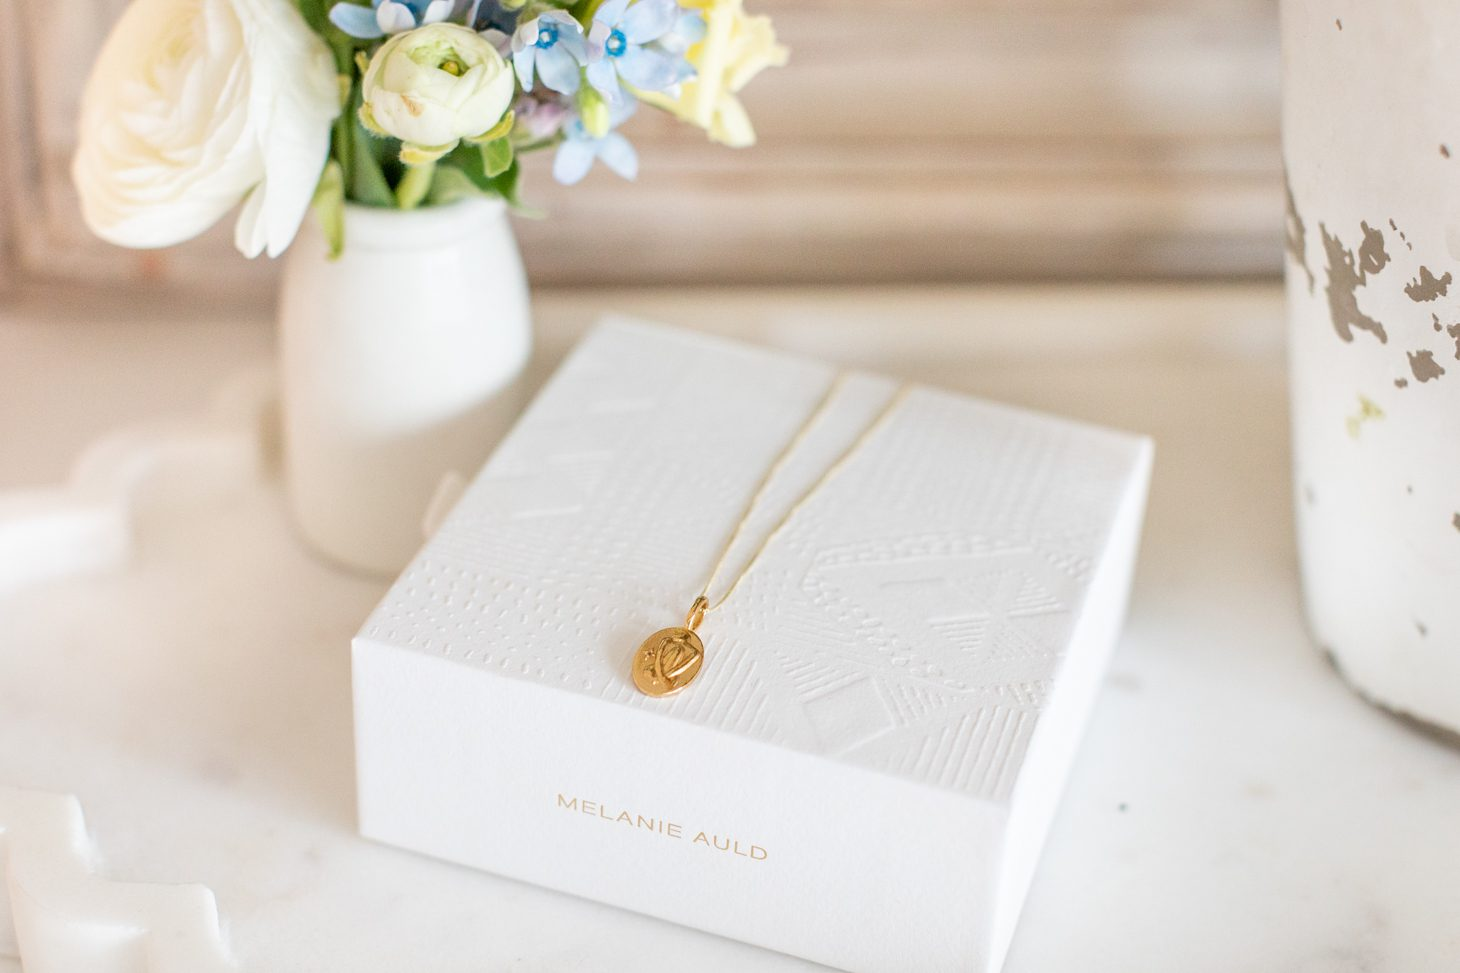 Melanie Auld X Jillian Harris Goddess Necklace